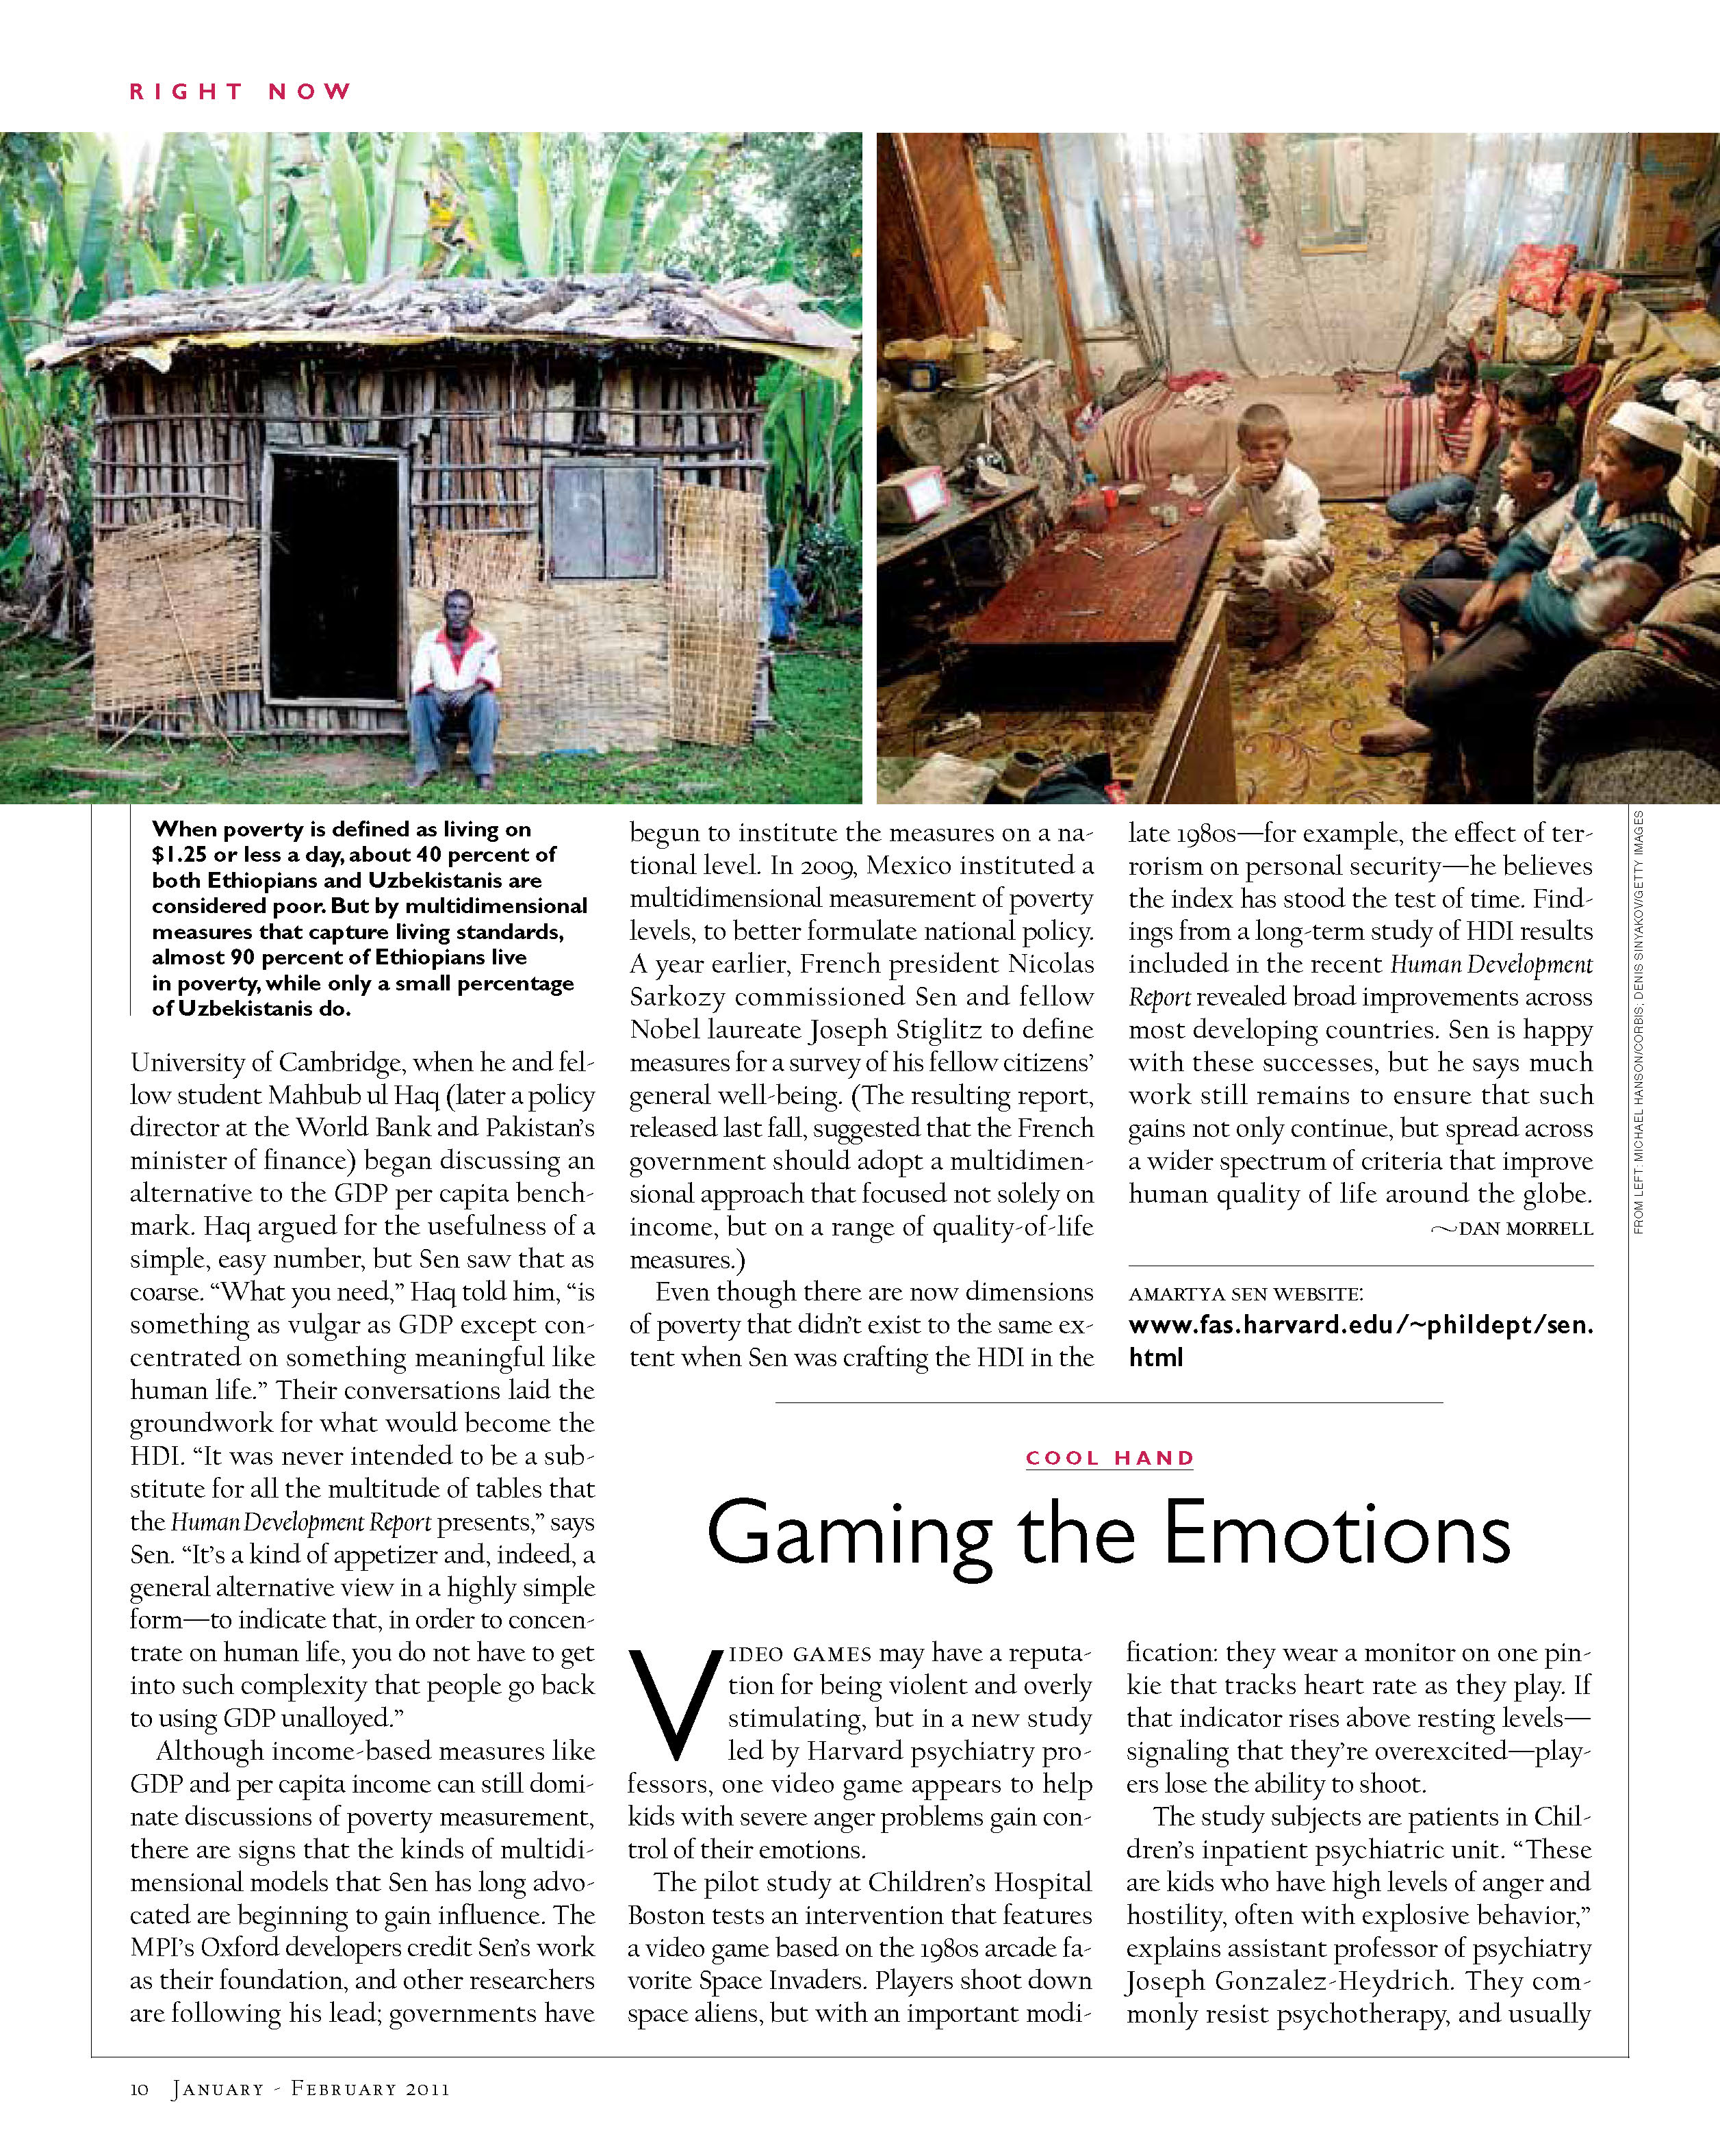 Gaming the Emotions